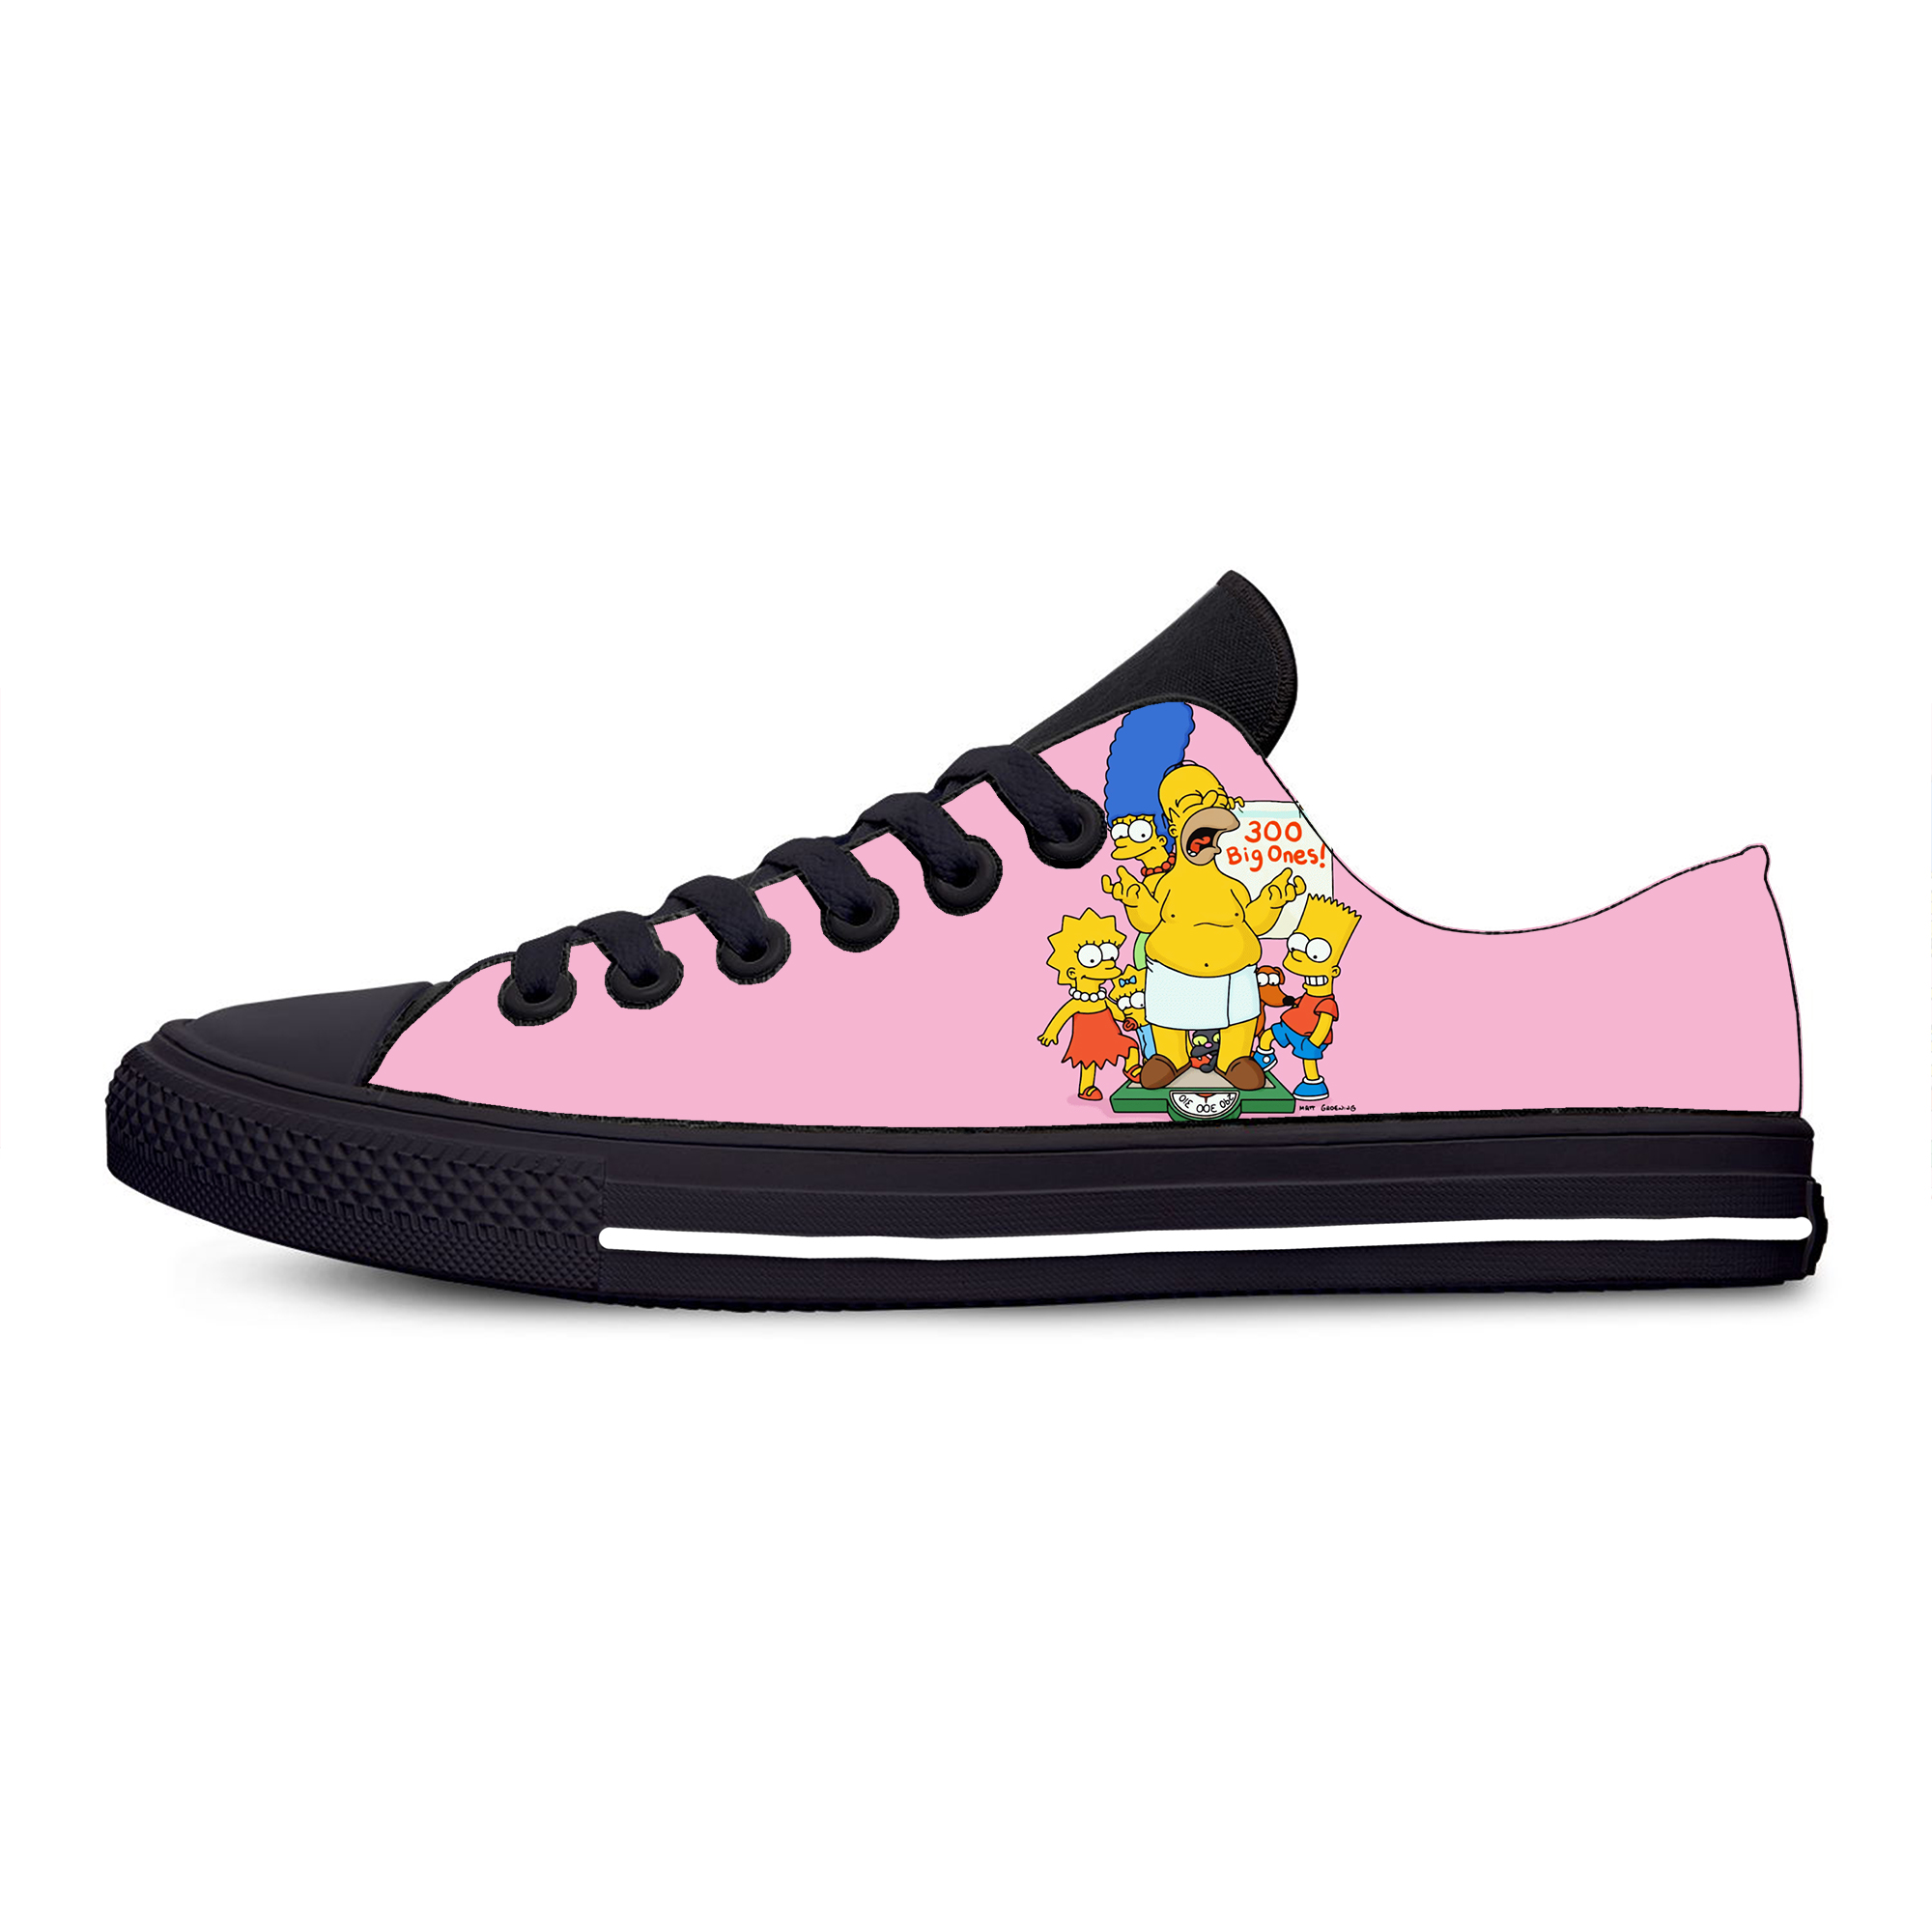 Cartoon Halloween Funny Lace Up Loafers Canvas Skate Shoes for Women Fashion